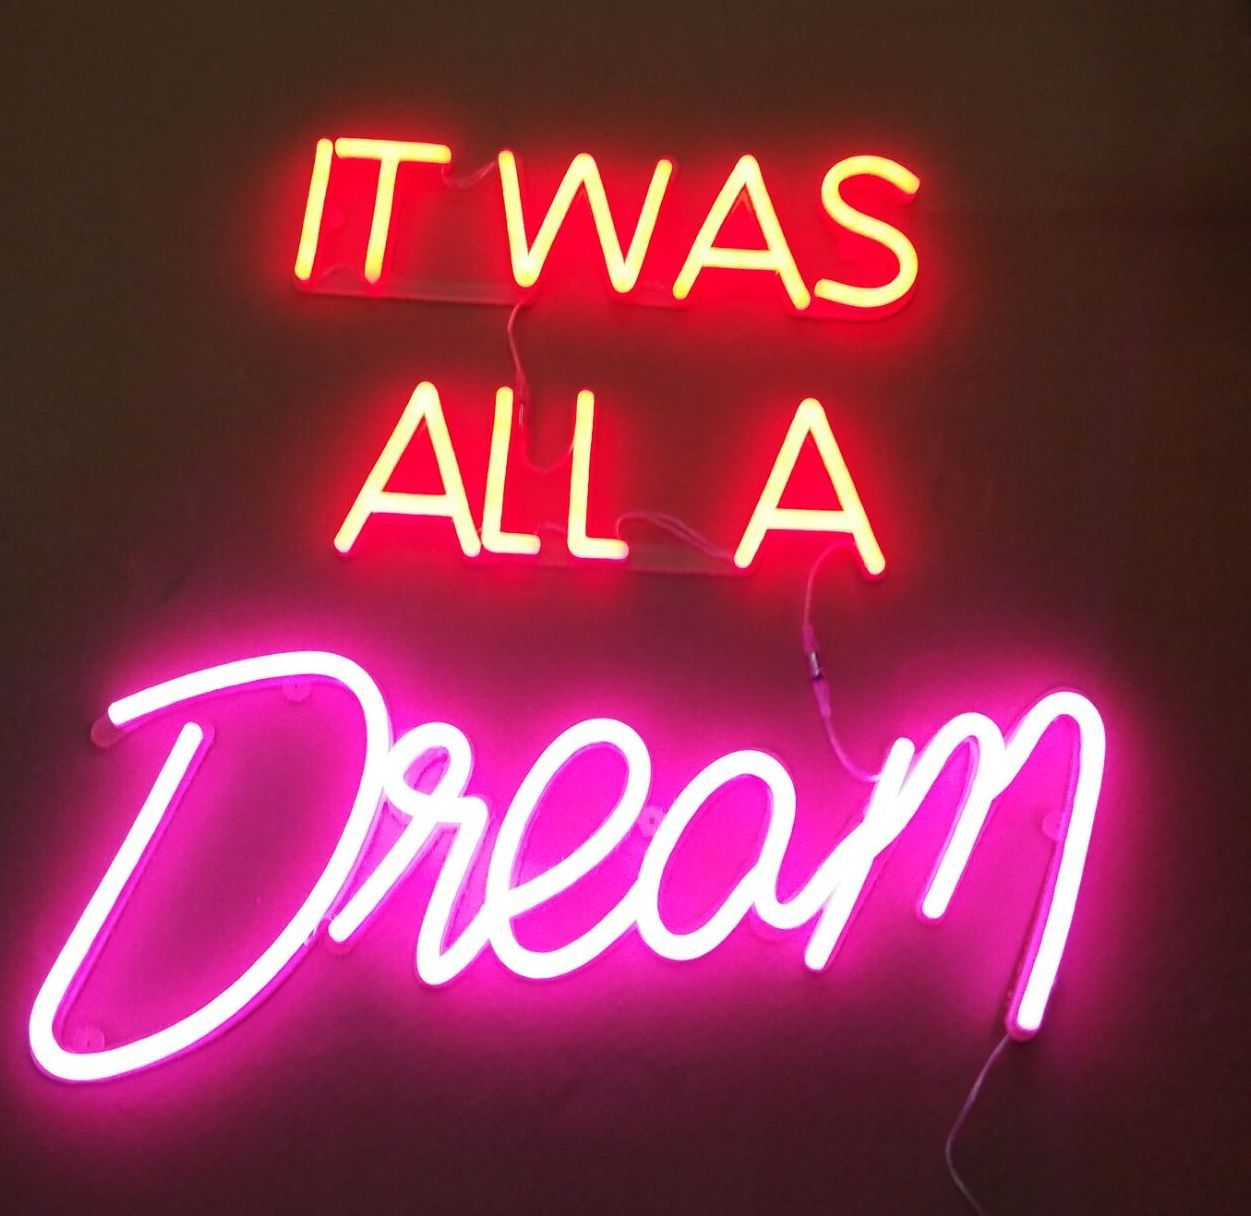 It Was All A Dream Neon Sign Custom It Was All A Dream Neon  Neon  Pinterest  Neon Thoughts And Neon Inspiration Design